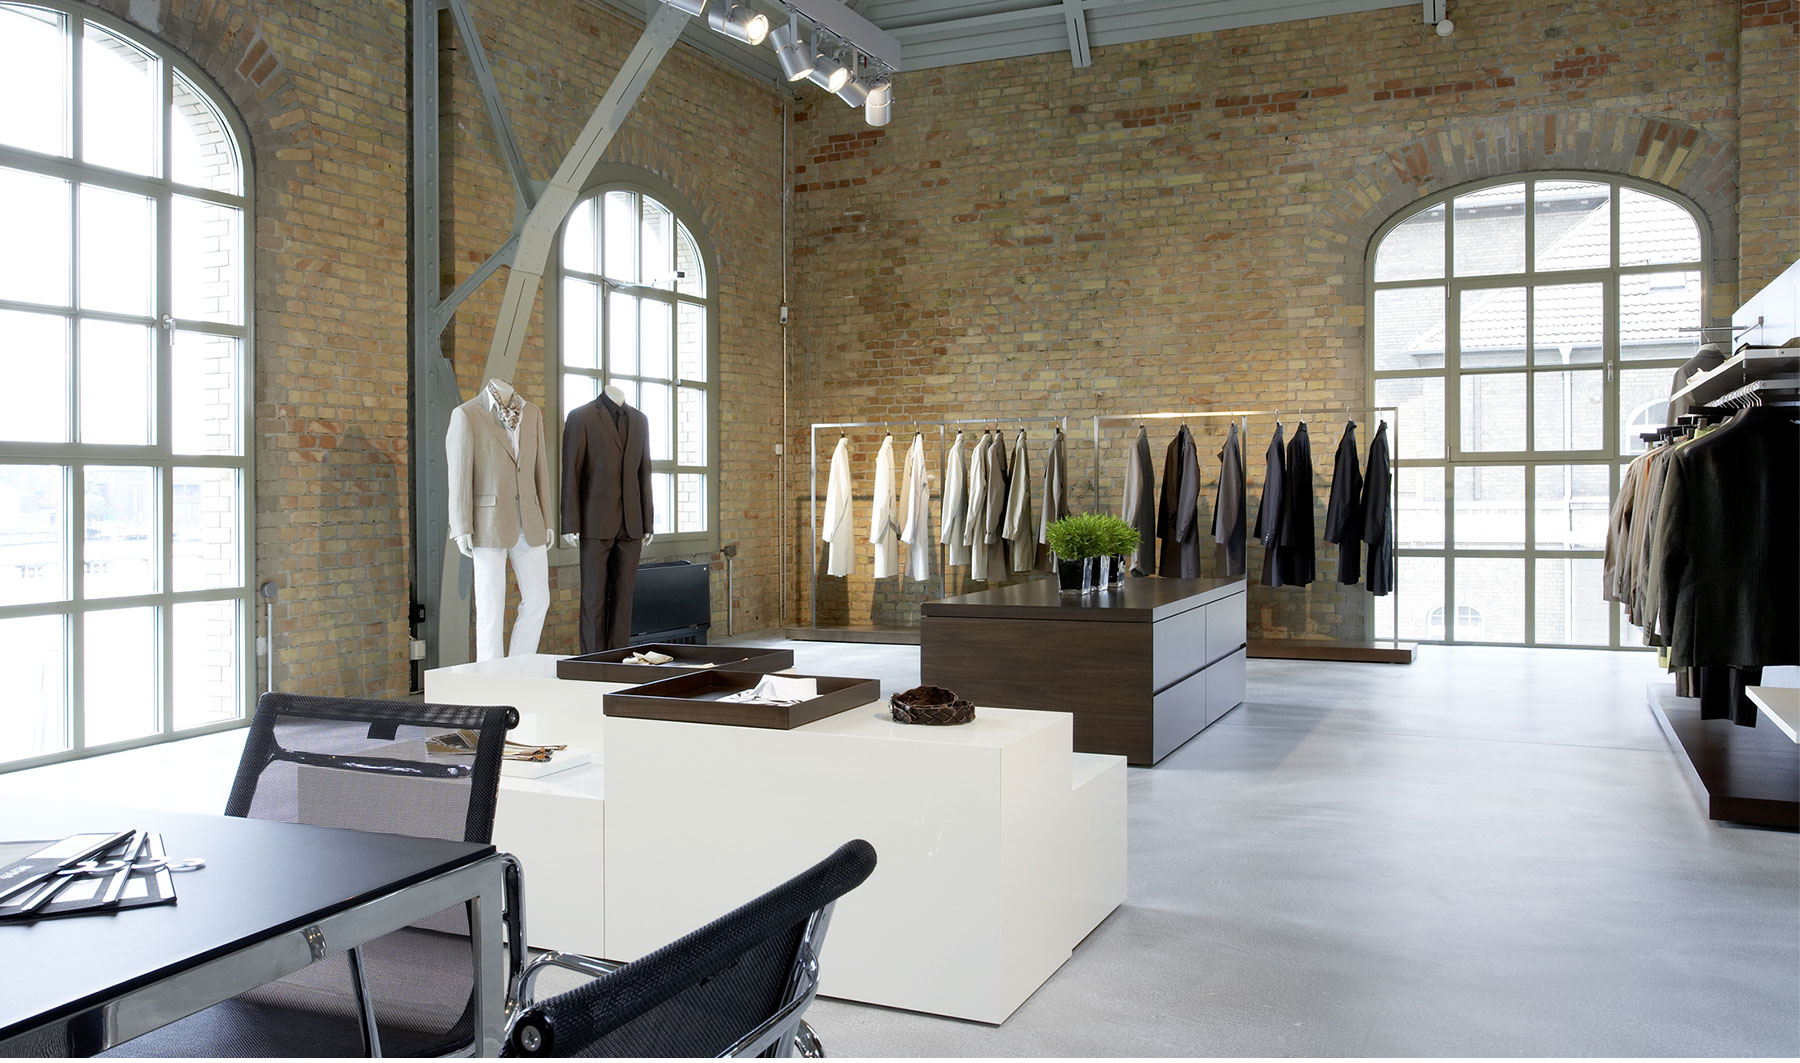 Referenzen Innenarchitektur SDW DESIGN Ladengestaltung Hugo Boss